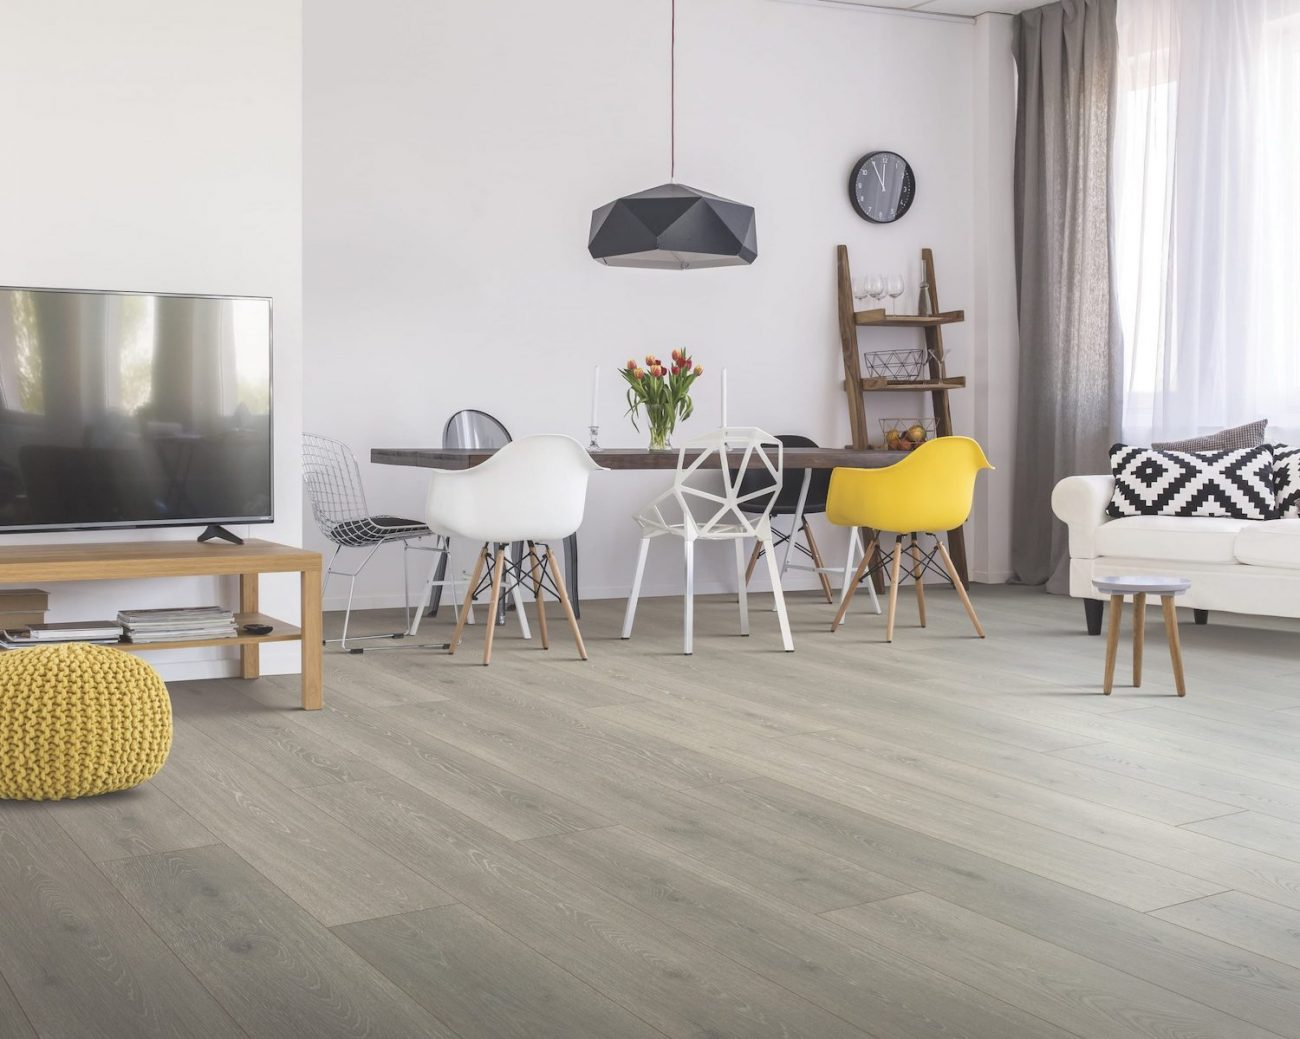 Mohawk Laminate Flooring For Your Home Improvements